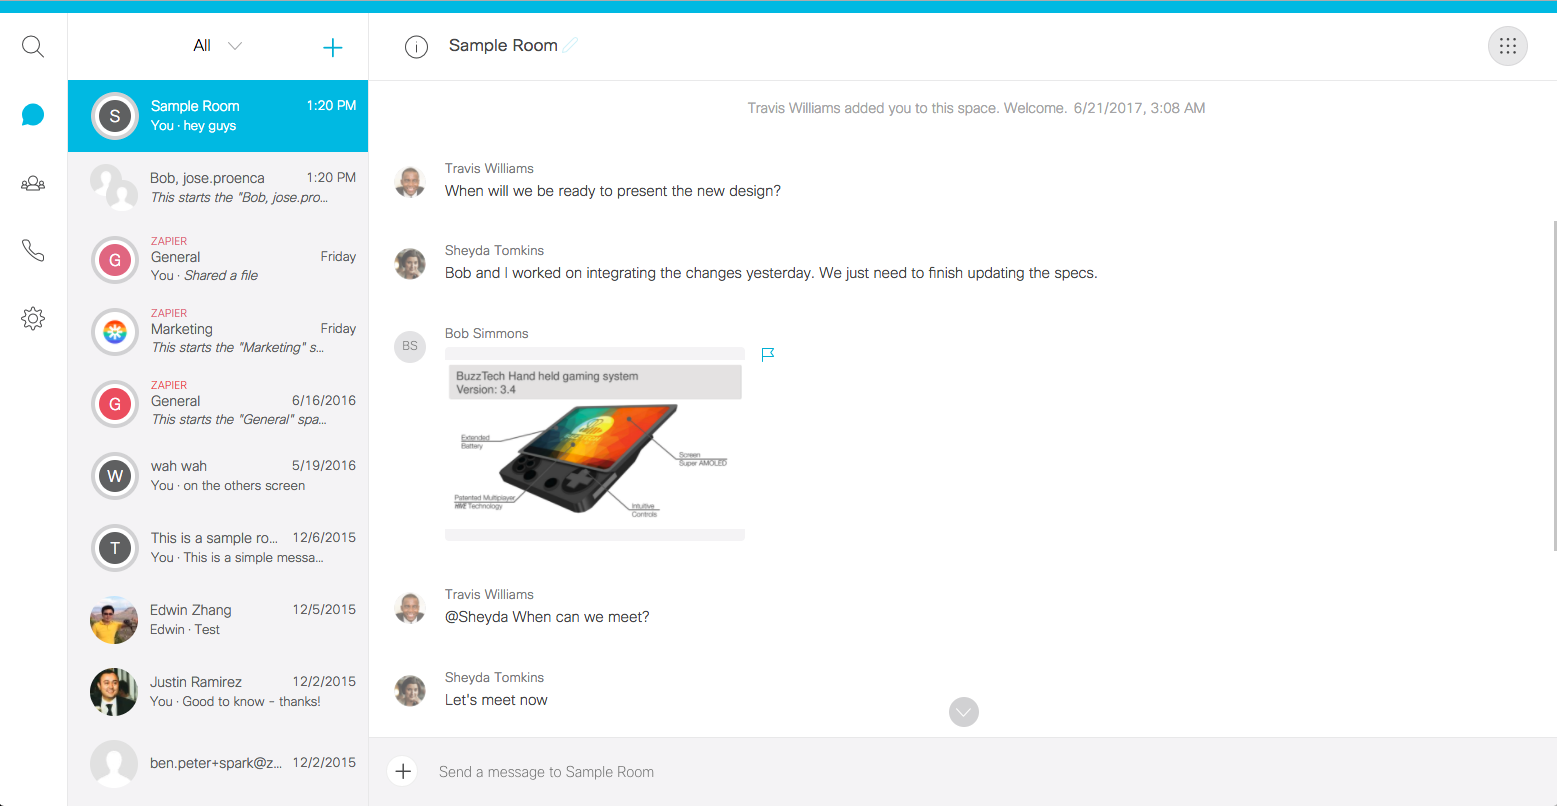 Cisco Webex Teams - Features, Pricing, Alternatives, and More | Zapier